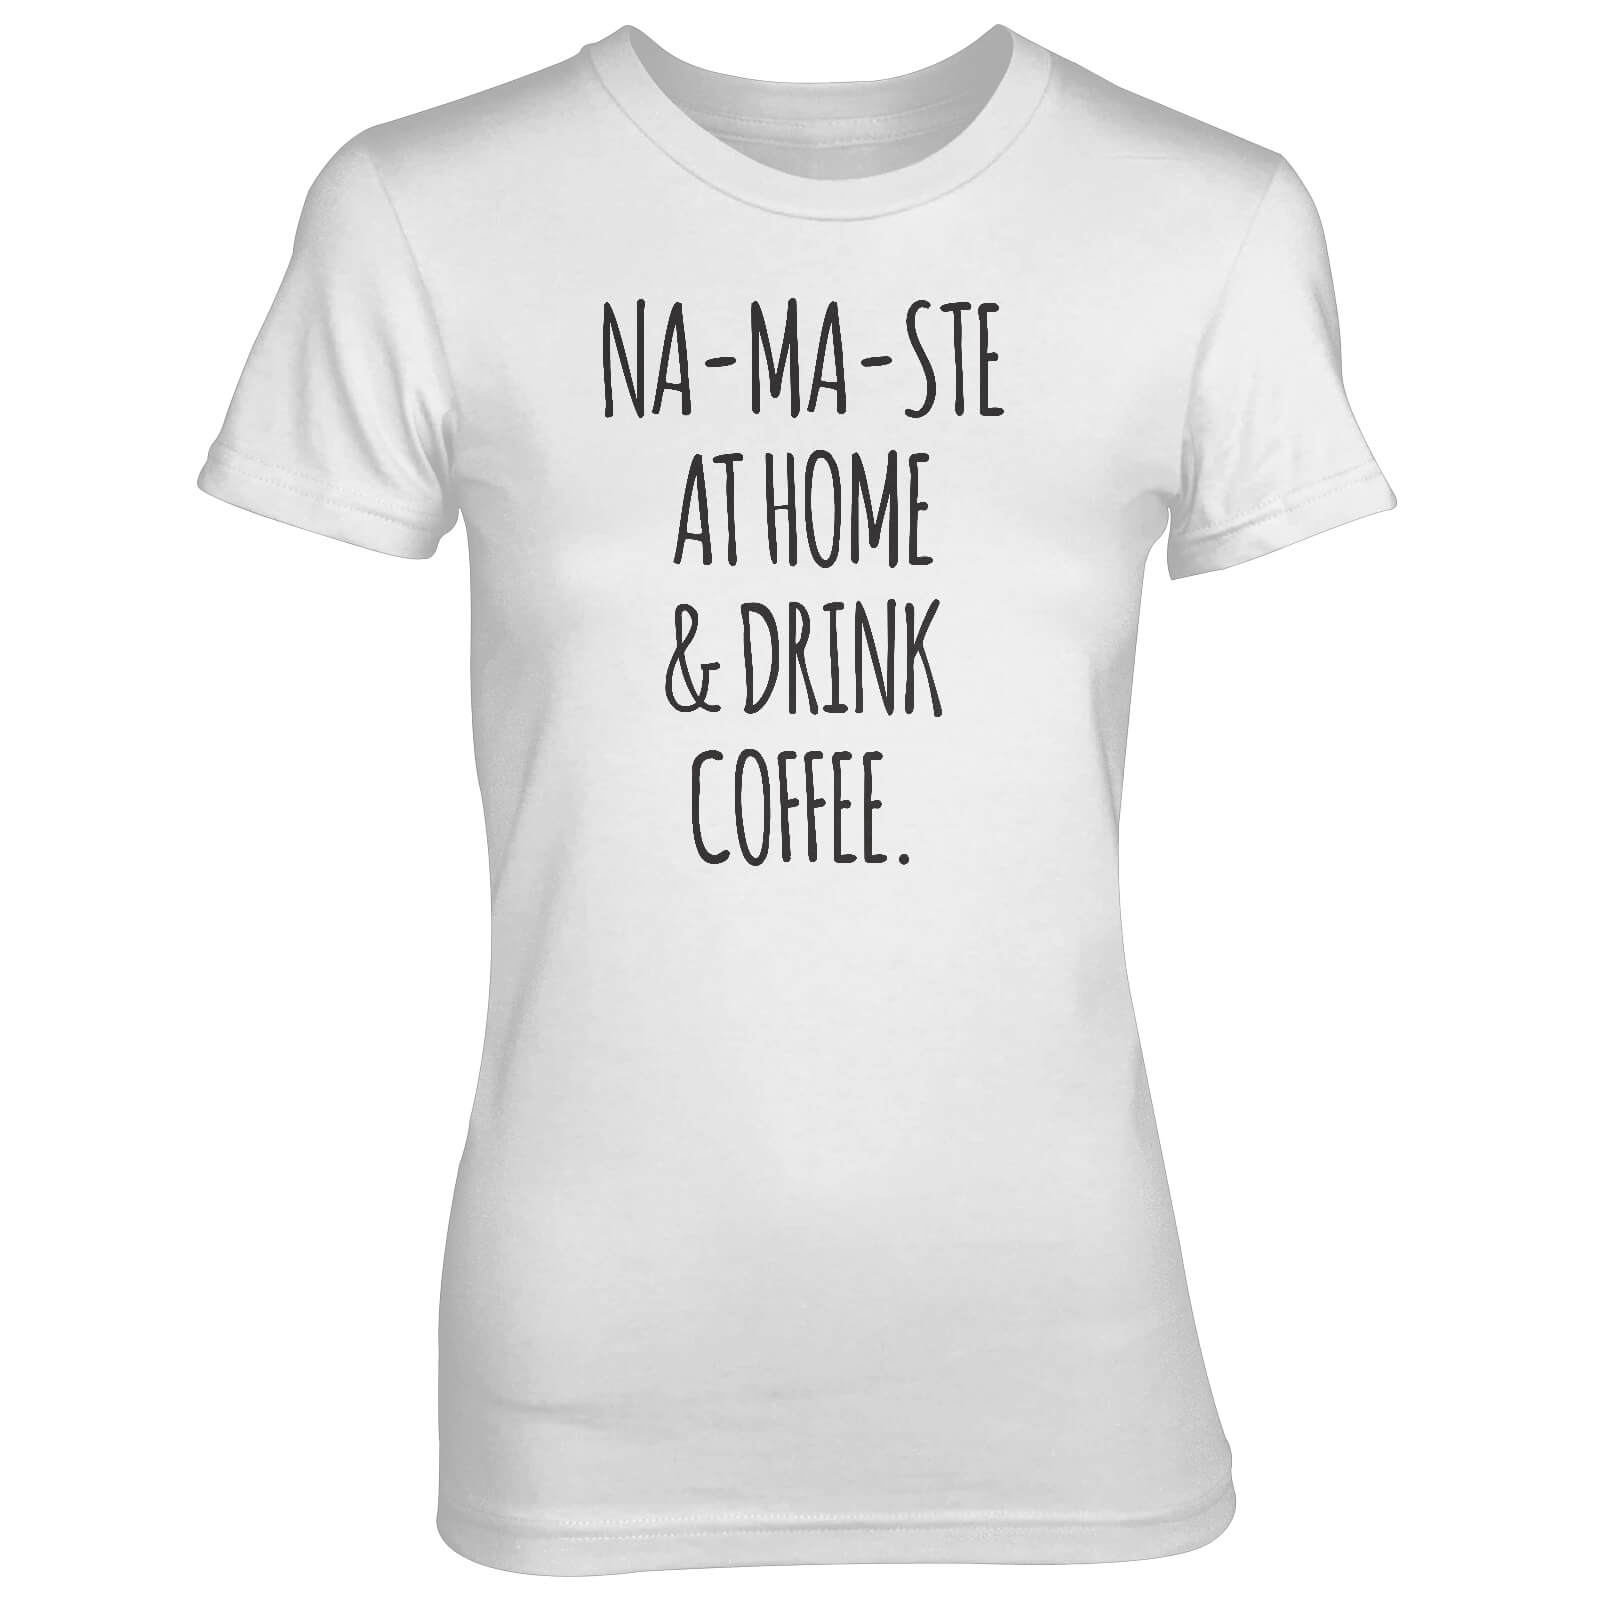 Na-Ma-Ste At Home And Drink Coffee Women